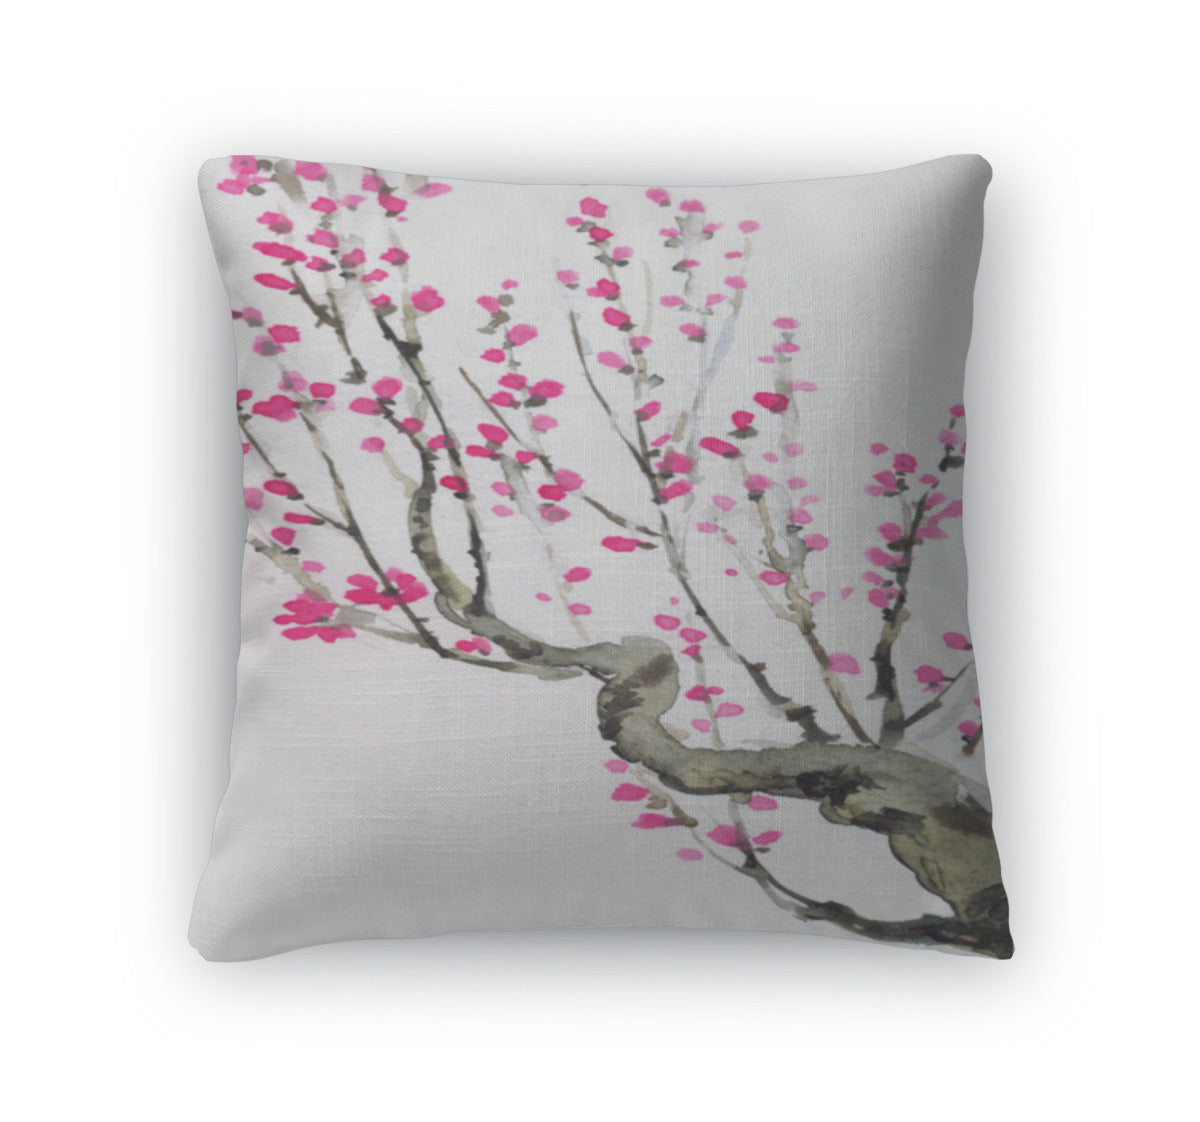 Throw Pillow, Watercolor Crimson Flowers On Tree Branches - fashionbests